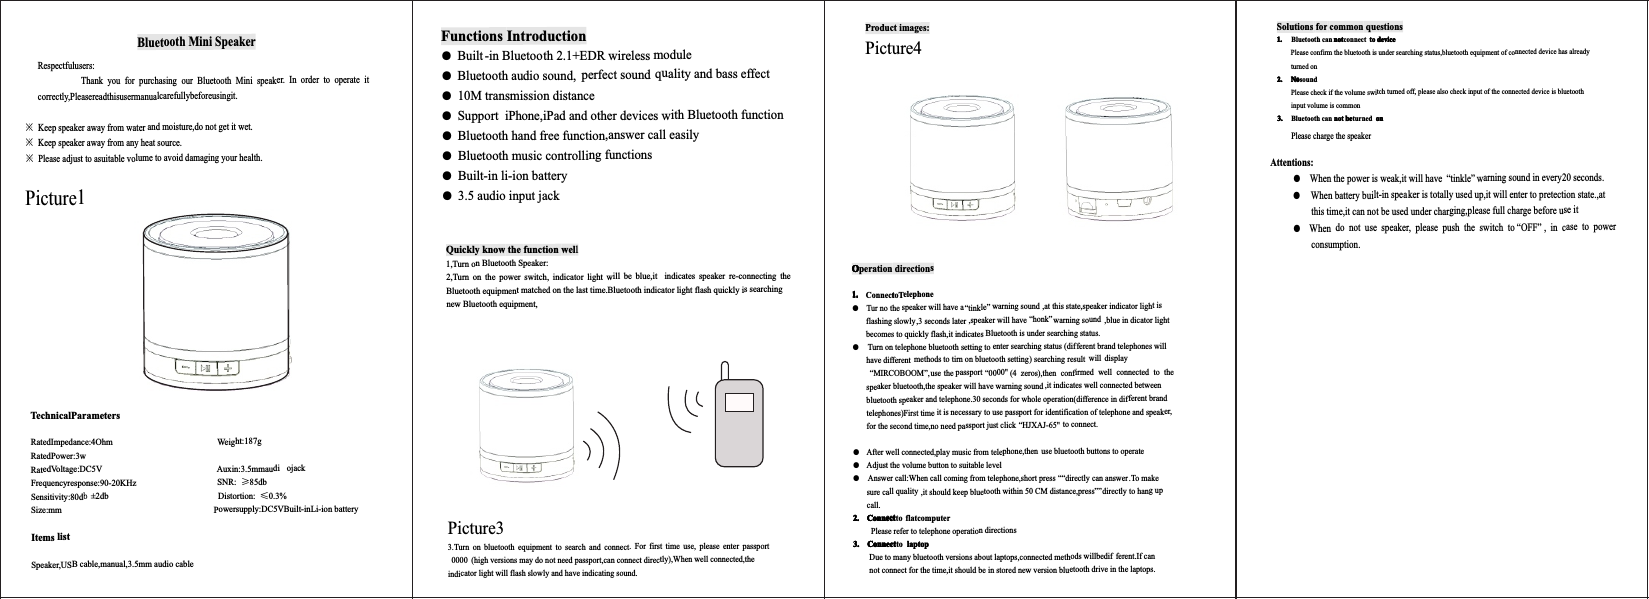 bluetooth model 56s user manual